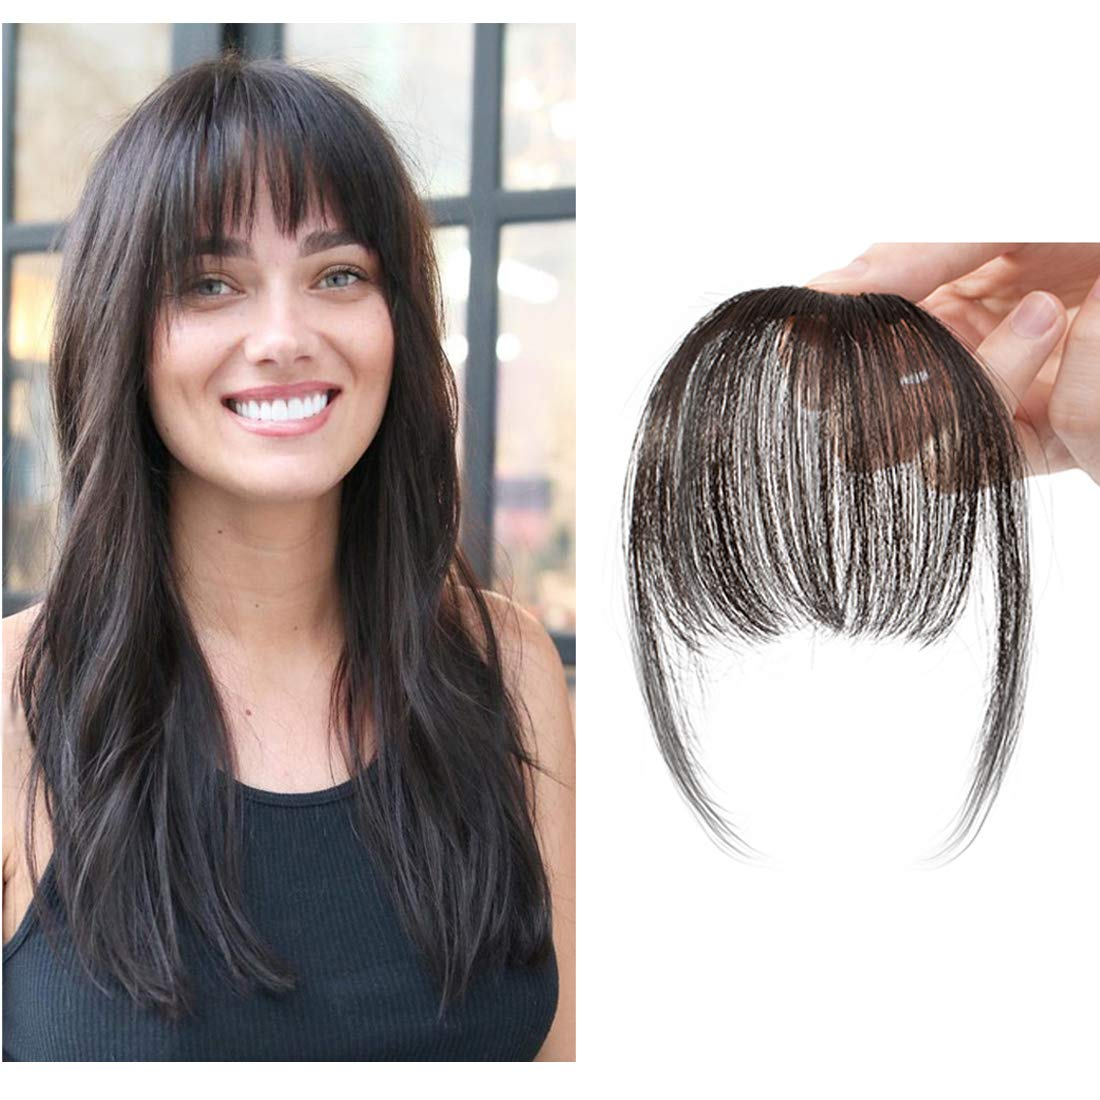 Clip in Air Bangs Human Hair Extension with Temple Thin Tied Mini Air Fringe Hair Piece Front Full Neat Air Fringe for Women One piece #1B Natural Black